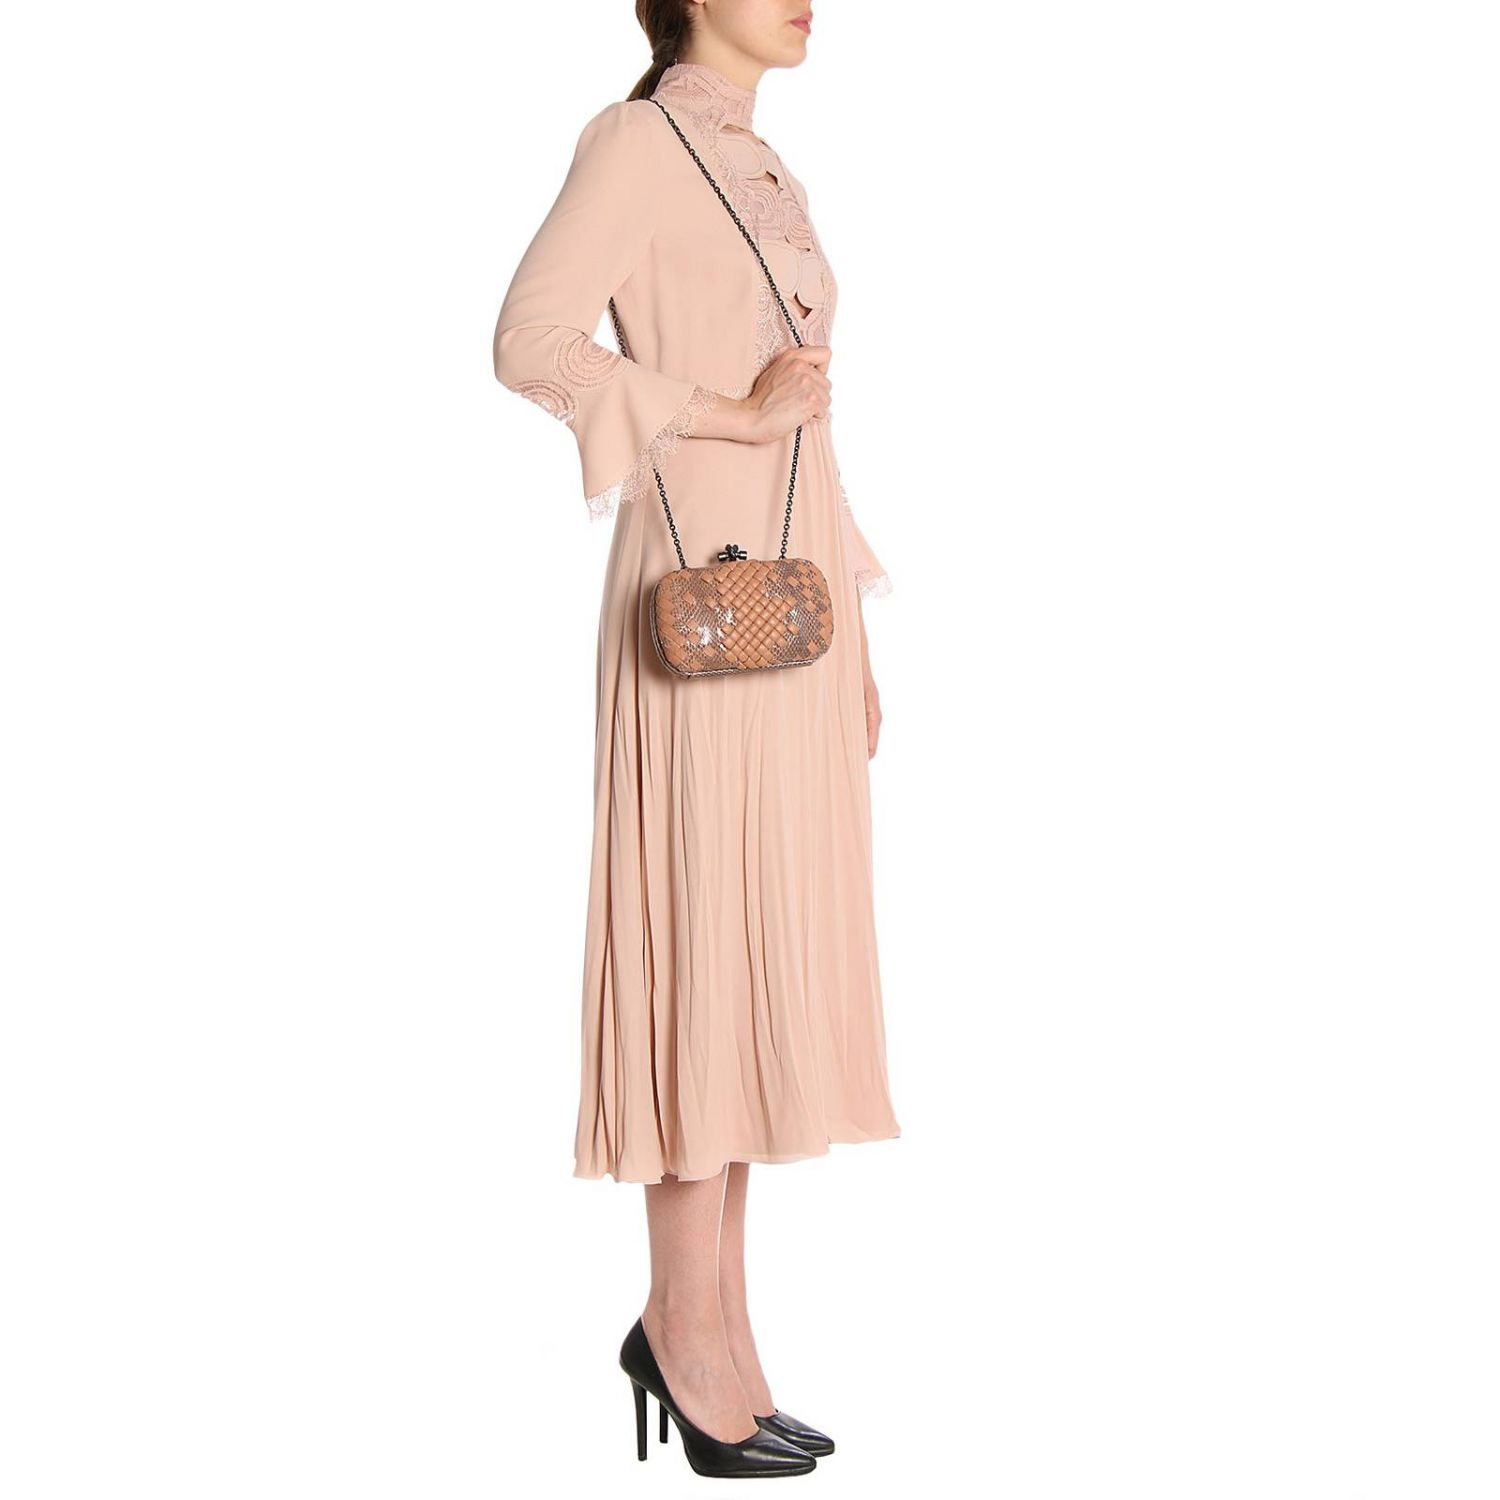 Dress Bottega Veneta: Dress women Bottega Veneta blush pink 5